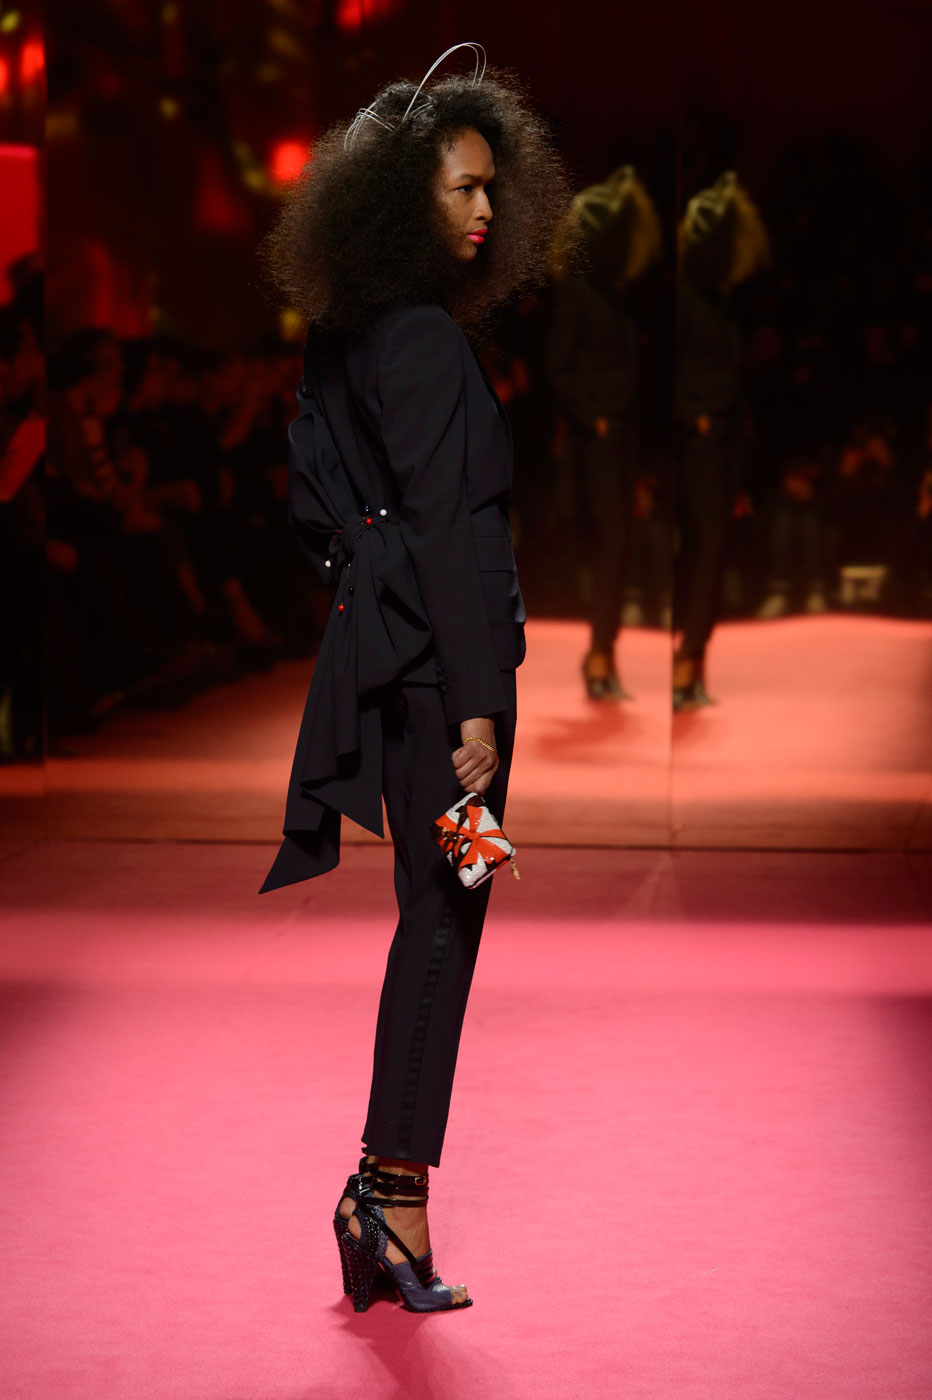 Schiaparelli-fashion-runway-show-haute-couture-paris-spring-summer-2015-the-impression-24